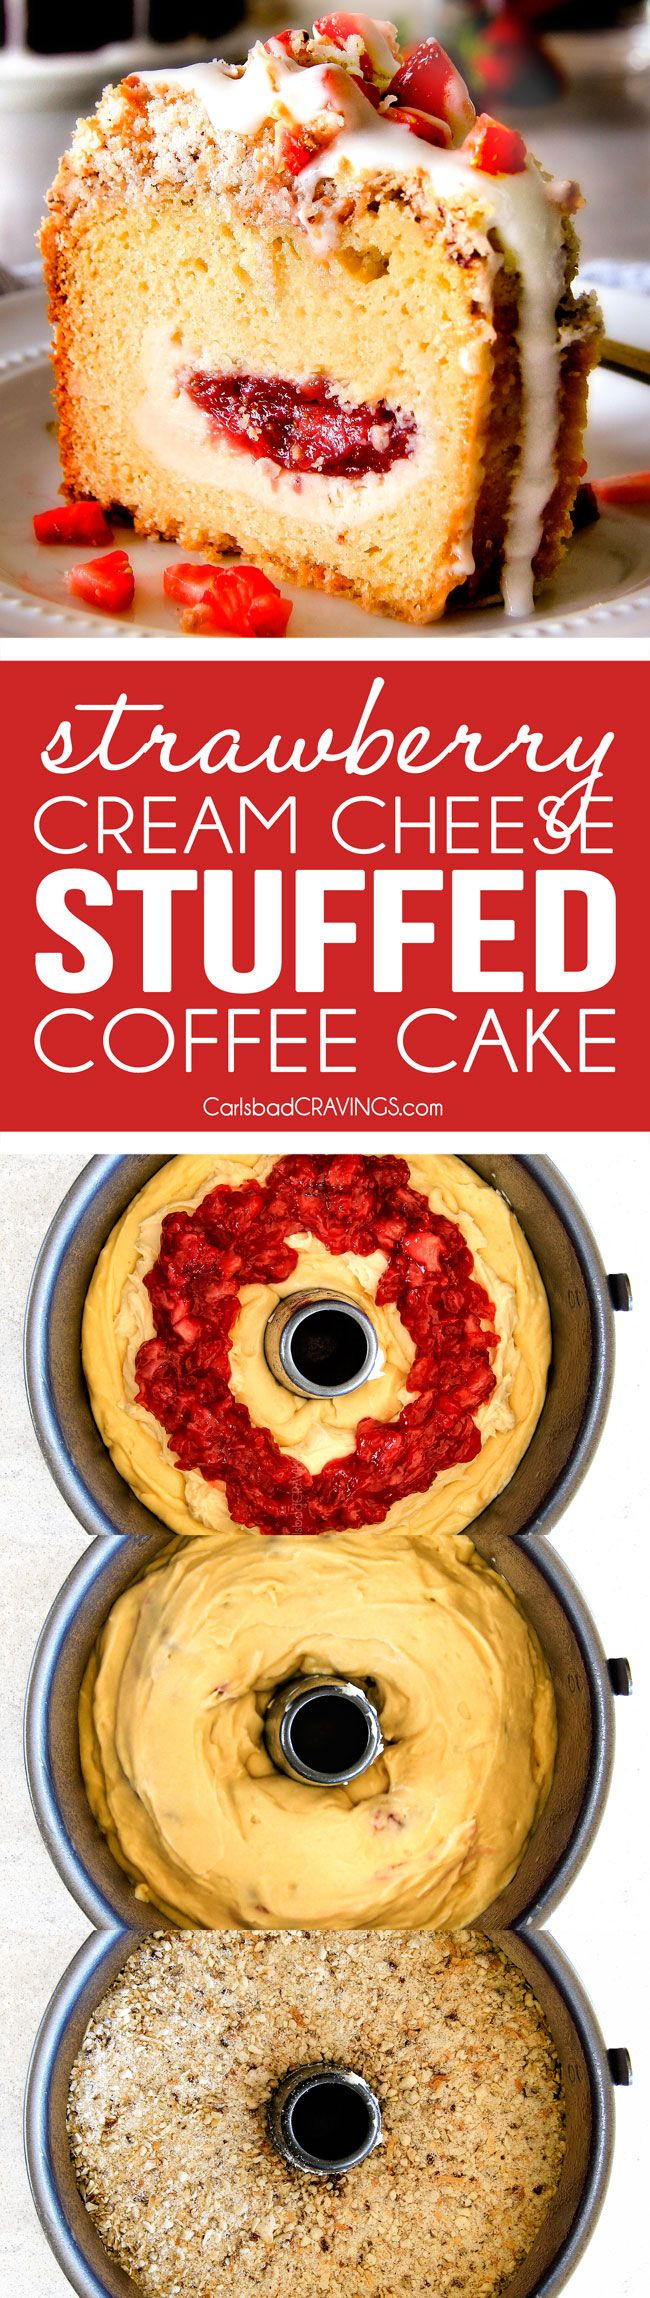 Strawberry Cream Cheese STUFFED Sour Cream Coffee Cake - this is the best strawberry coffee cake ever! the INCREDIBLY creamy cheesecake-like filling and strawberries all topped with Coconut Pecan Streusel and Lemon Drizzle is OUT OF THIS WORLD! I can't say enough good things about this coffee cake!